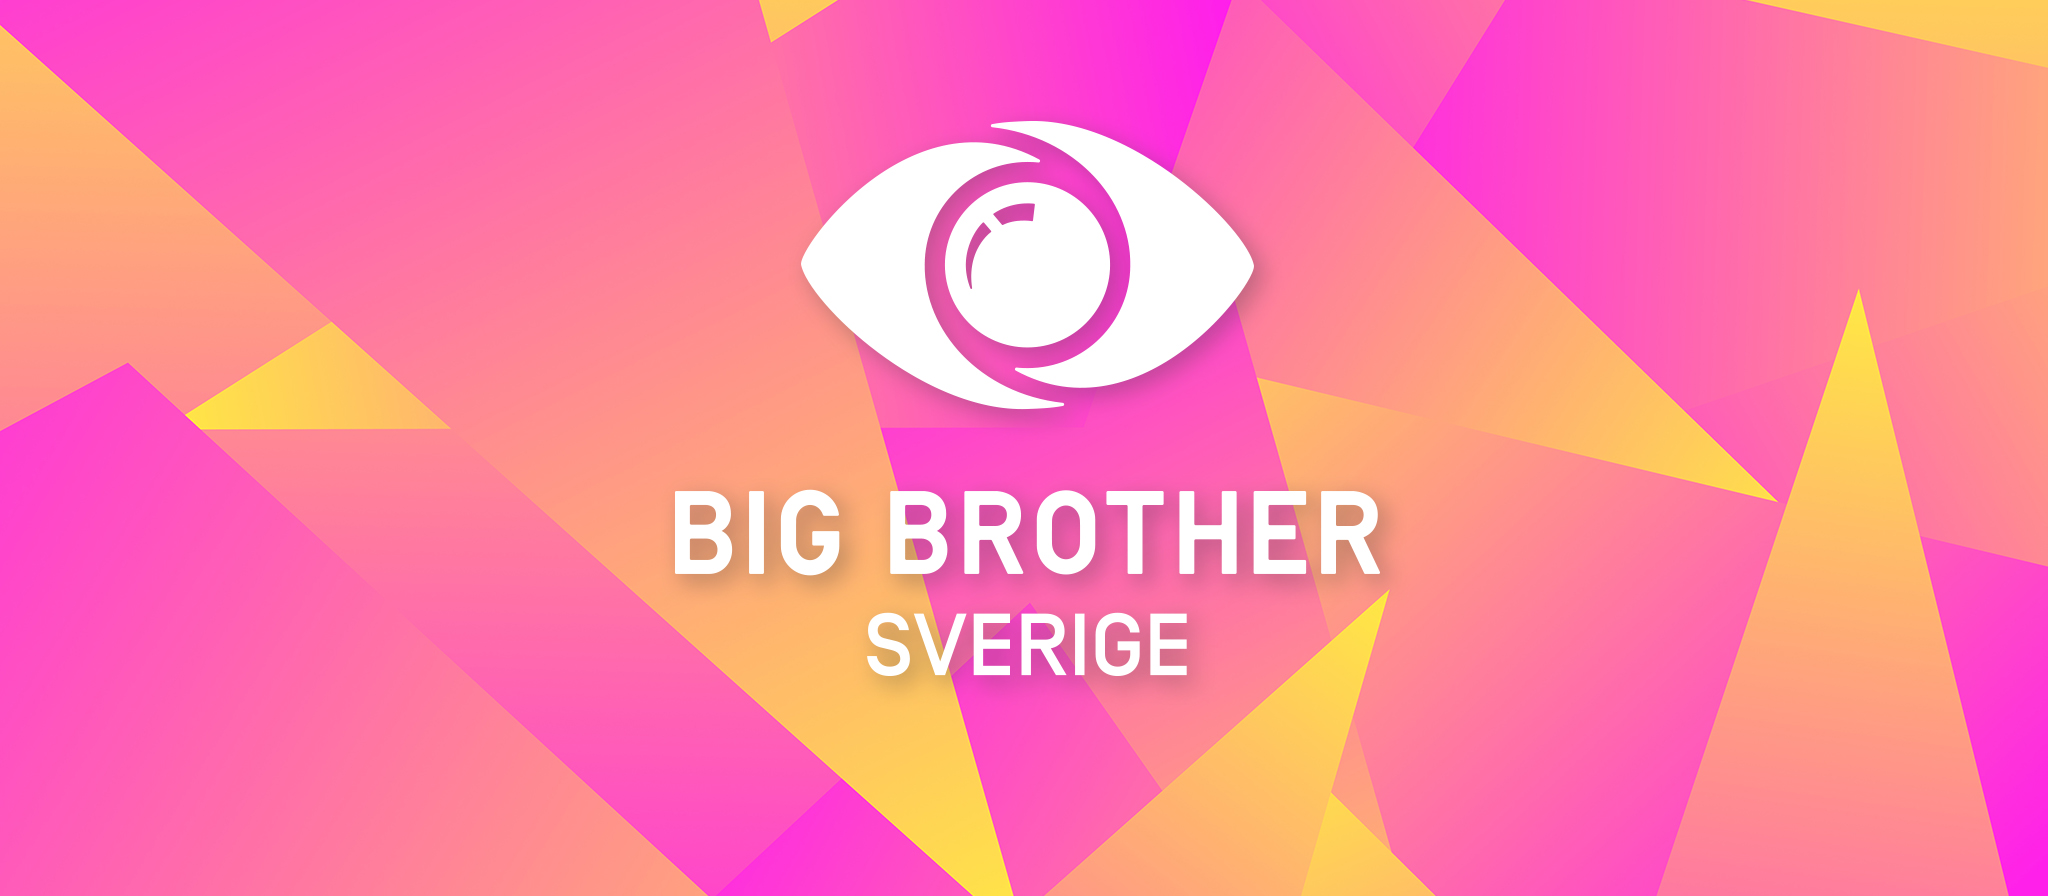 Big Brother 2019 Avsnitt Gratis Online